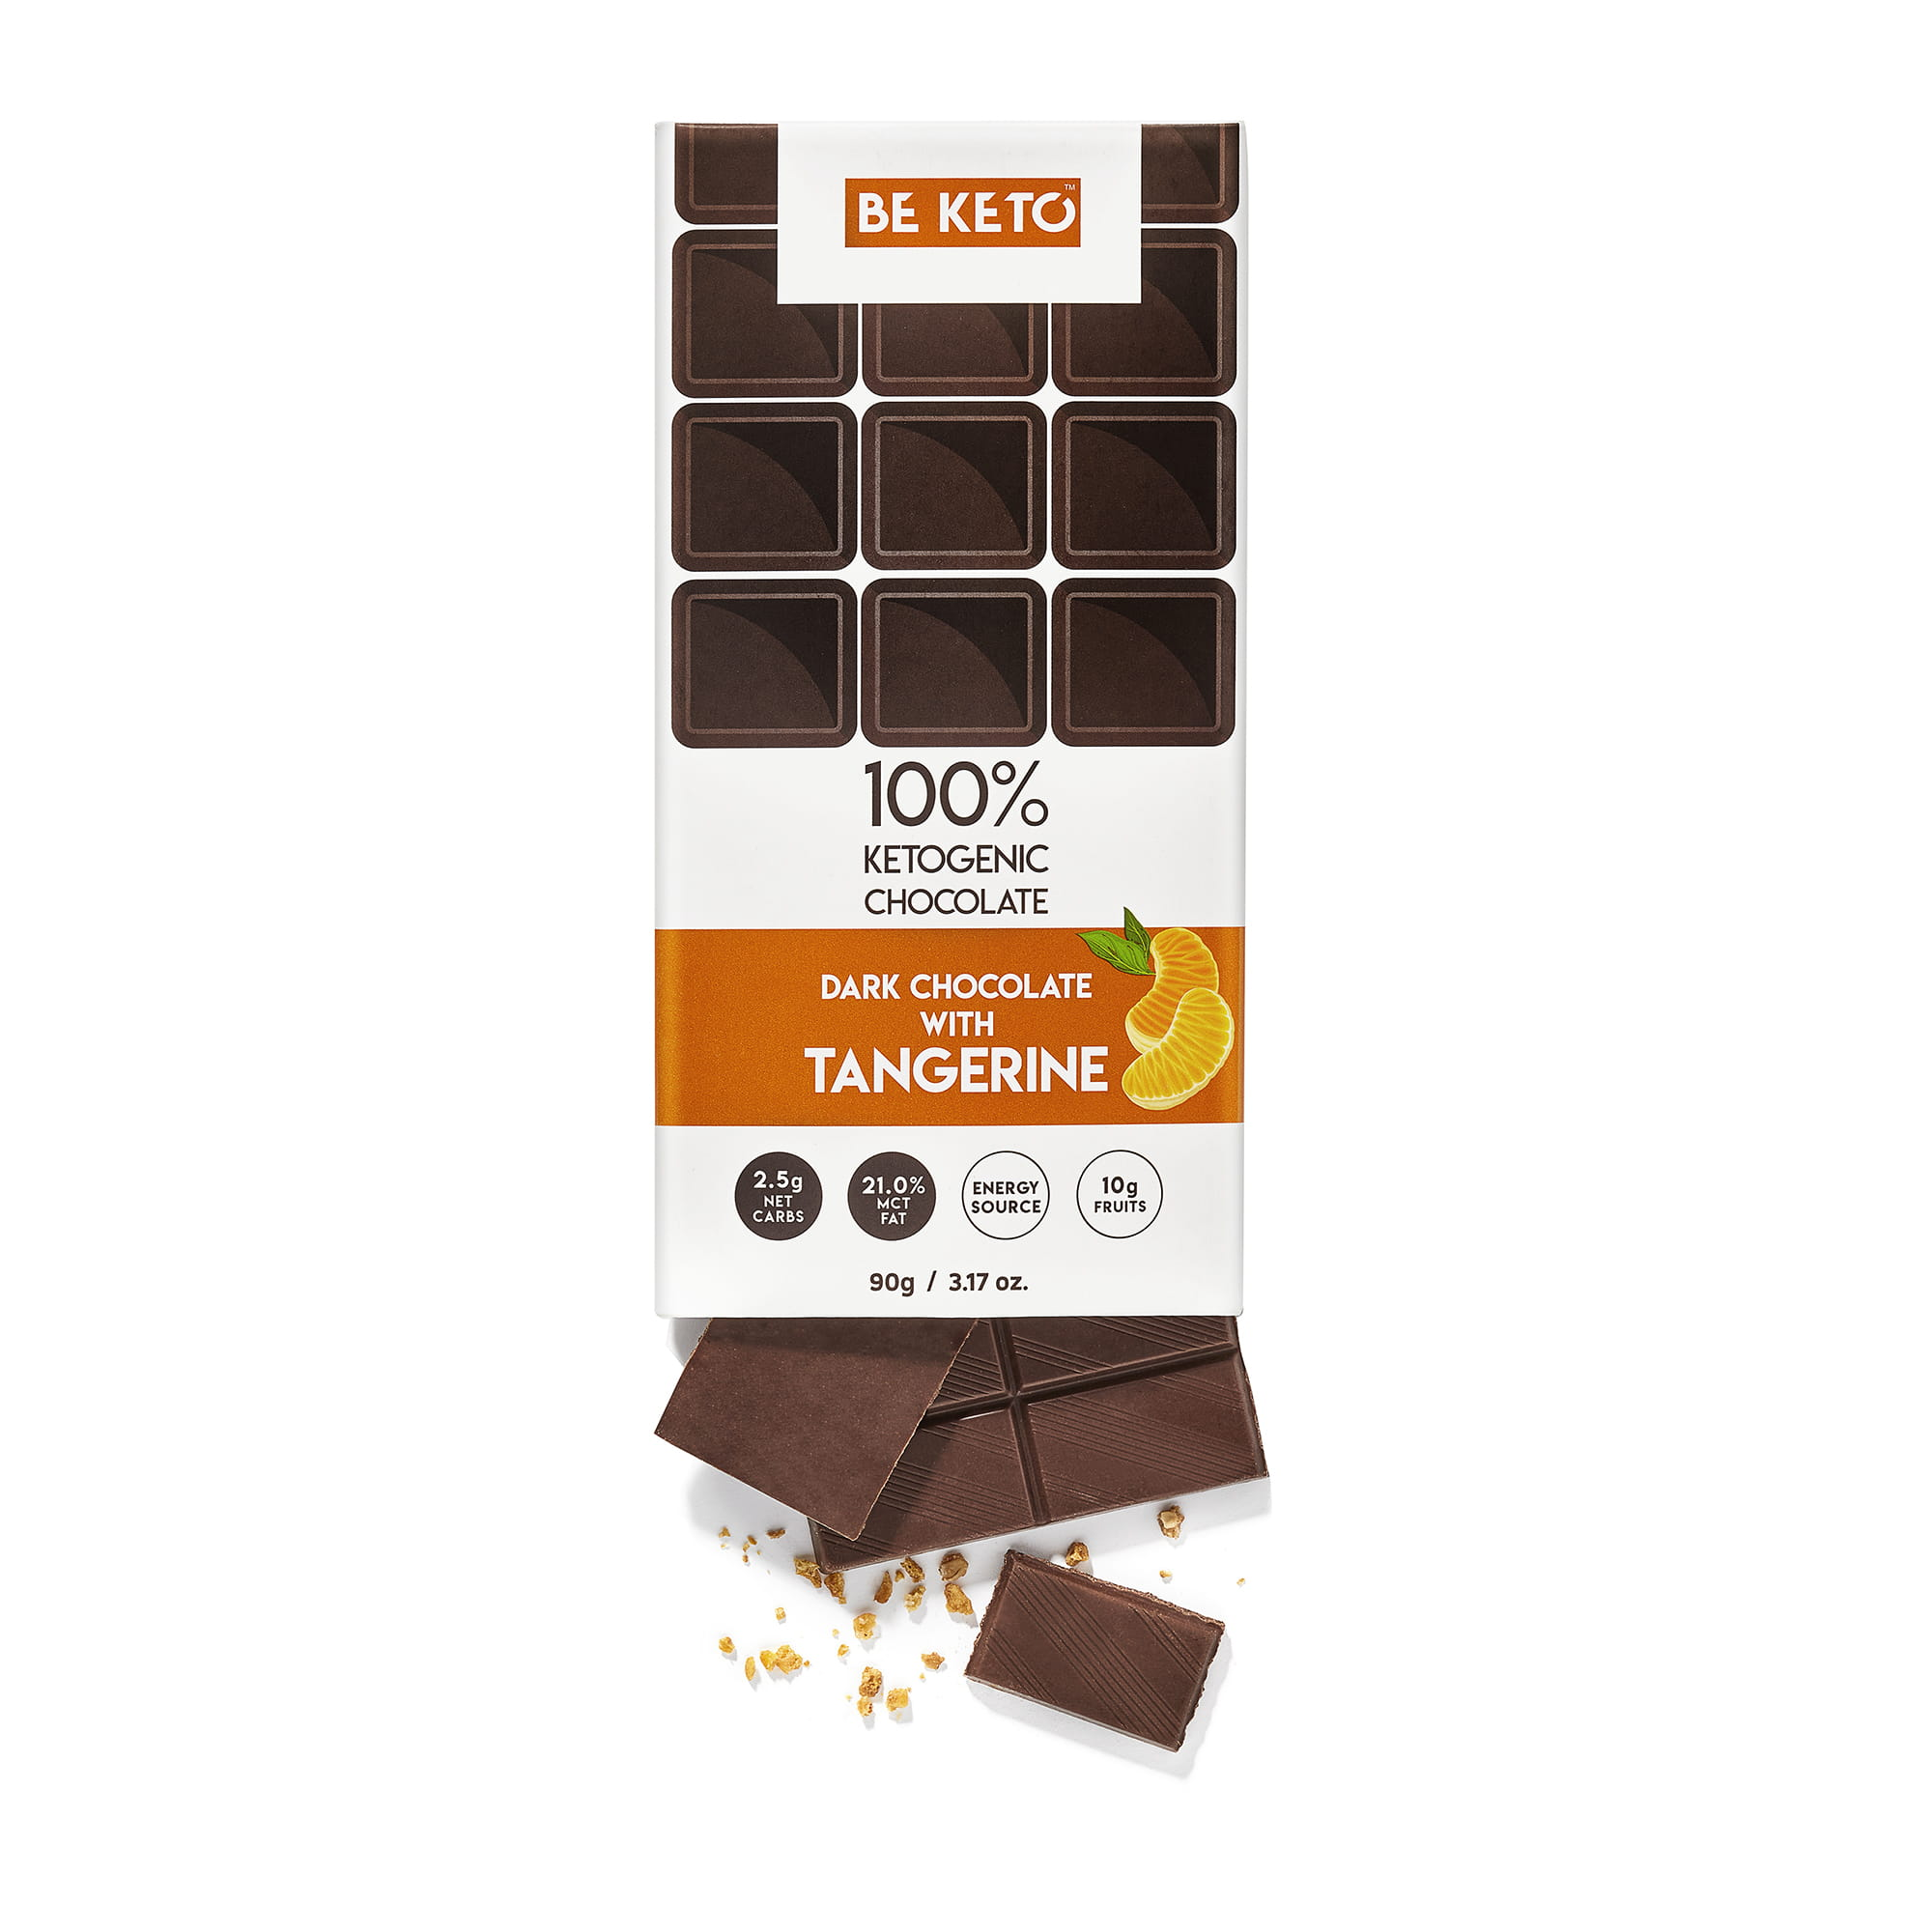 Keto Chocolate + MCT Oil - Tangerine